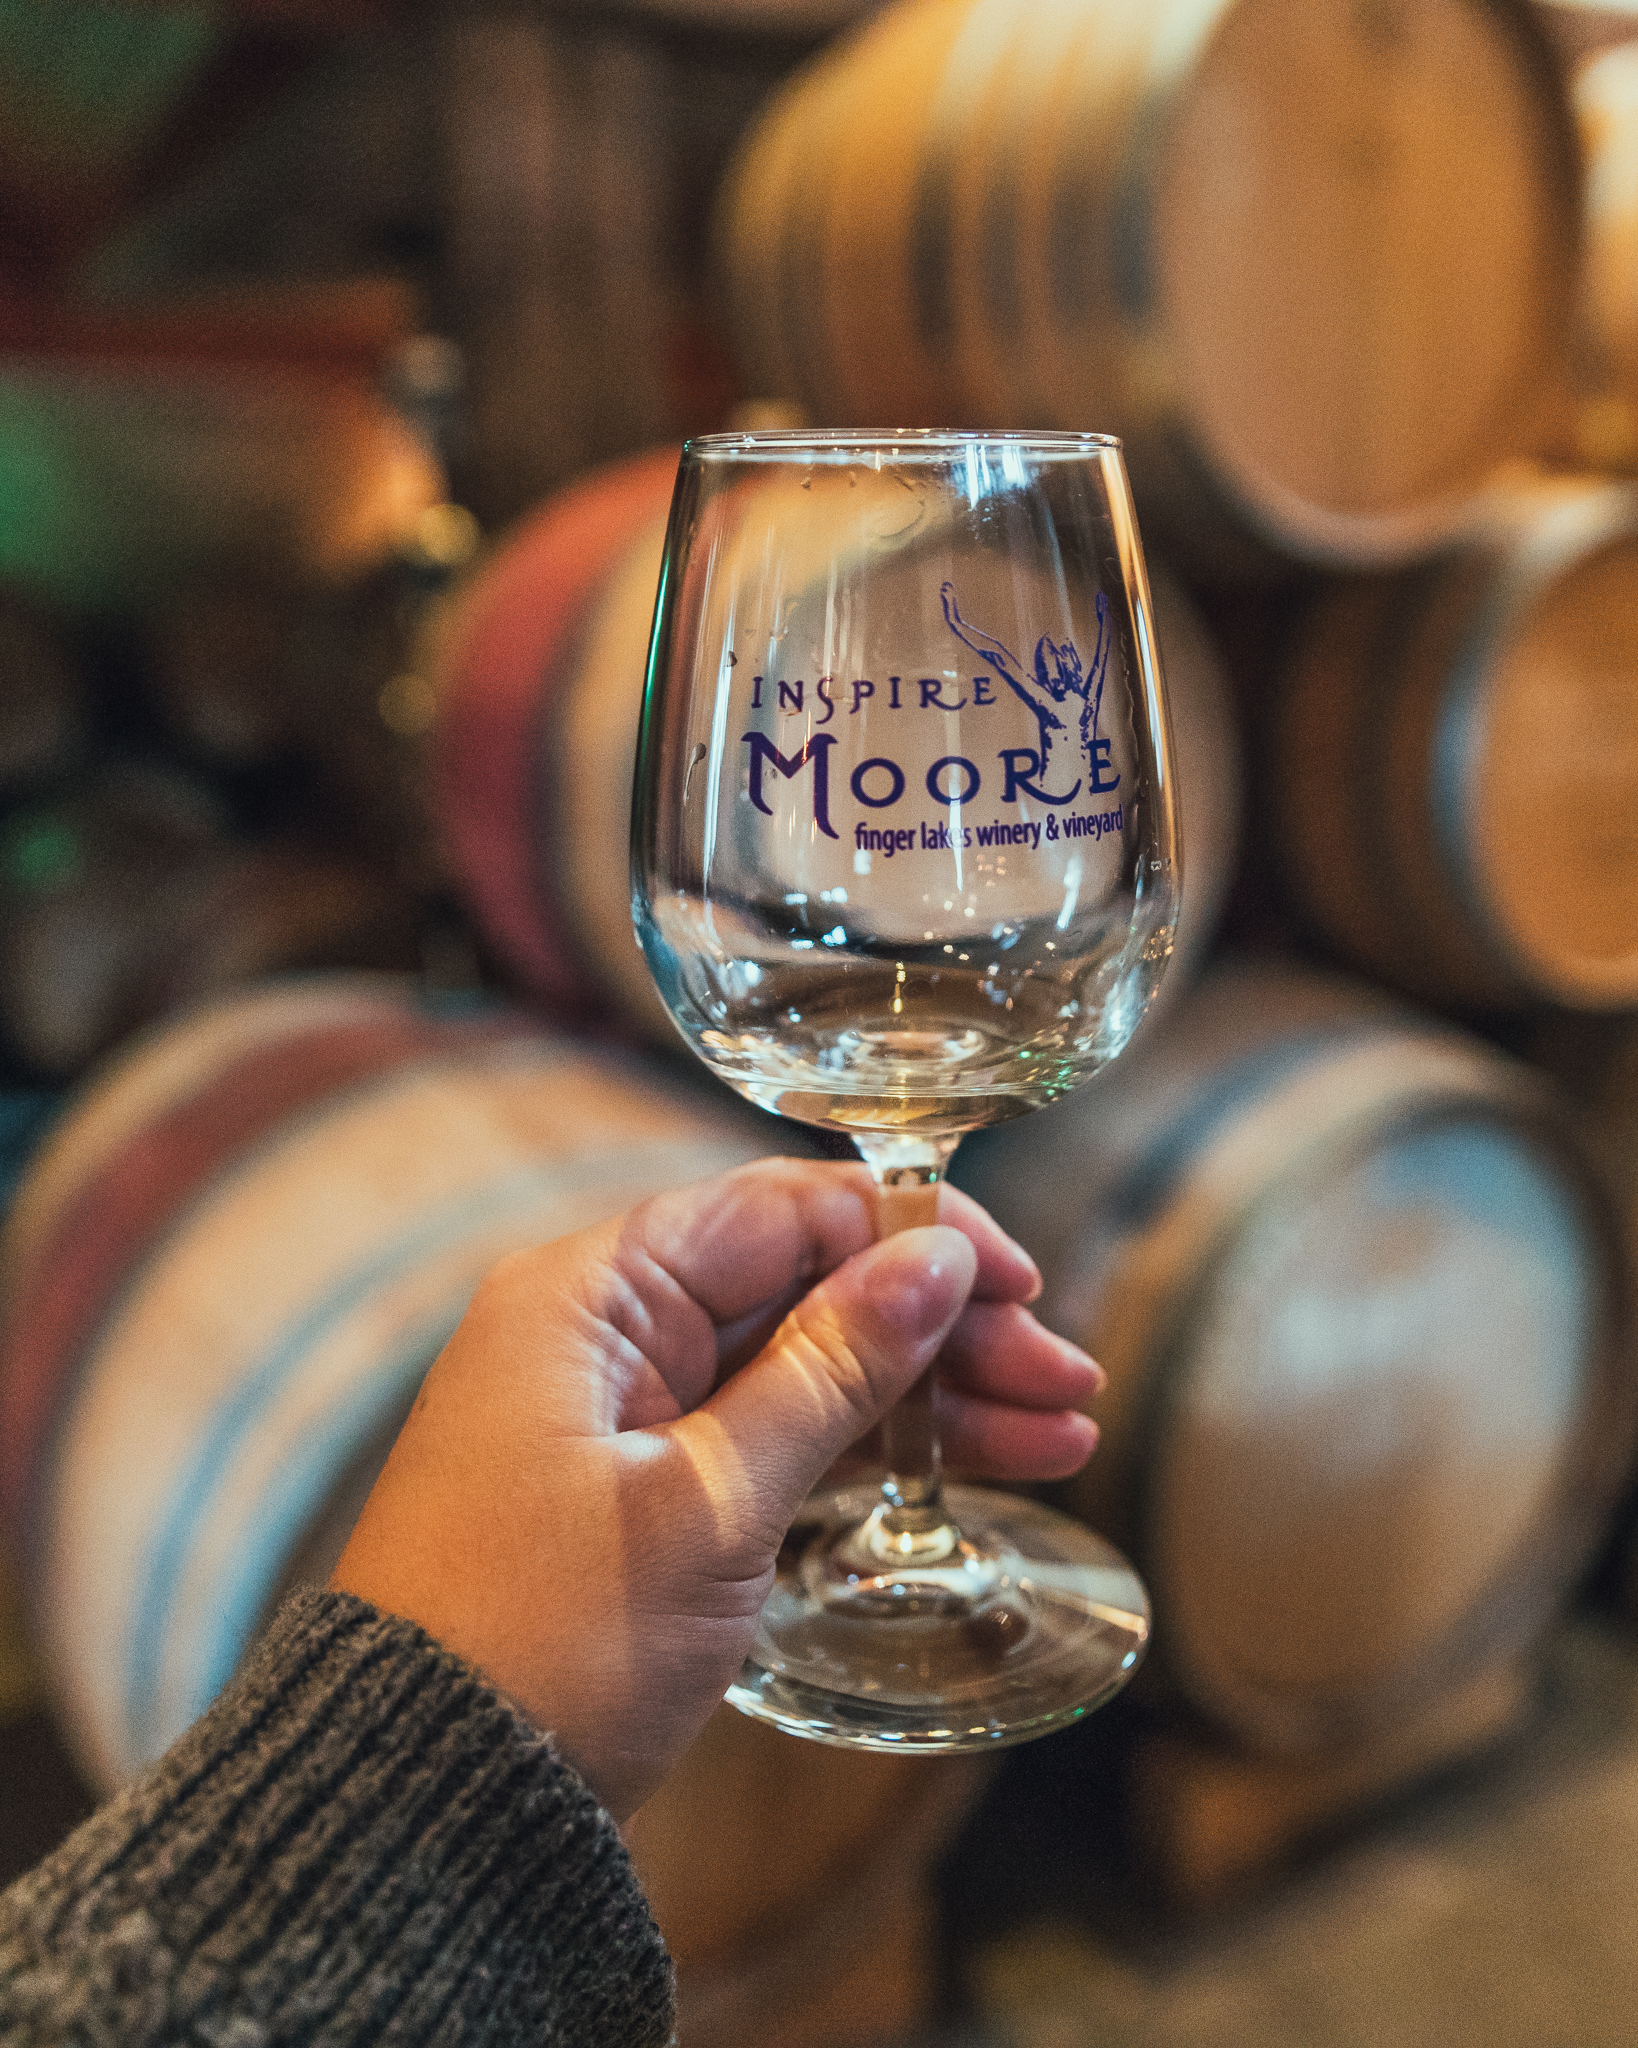 Inspire Moore Winery // 3 Days in the Finger Lakes: A Wine Trail Itinerary